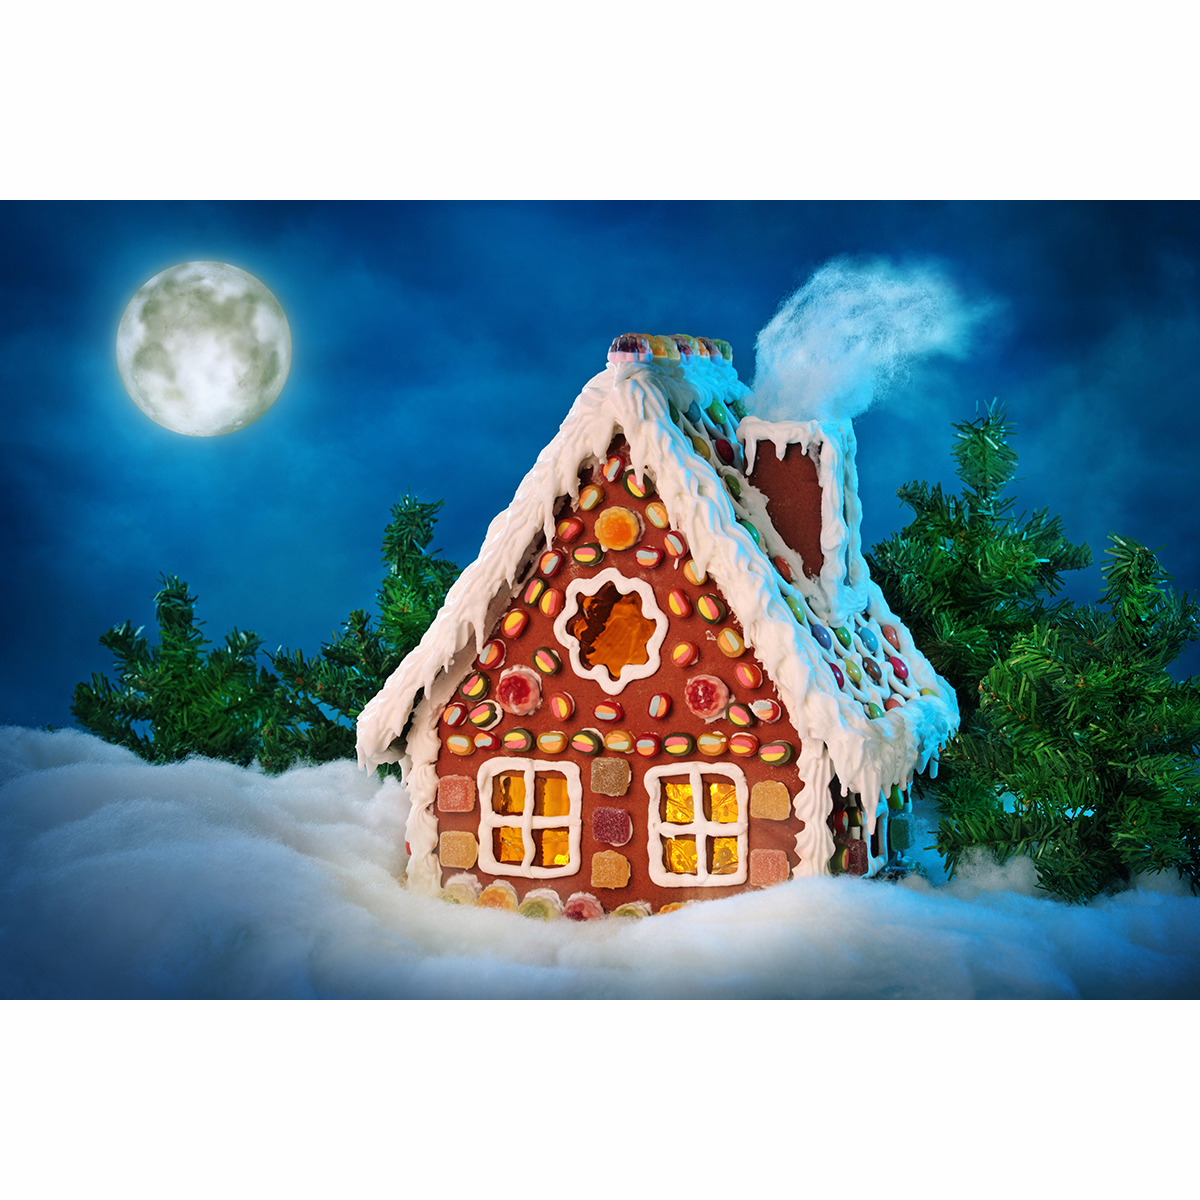 Christmas Gingerbread House Background.Allenjoy Background For Photo Christmas Gingerbread House